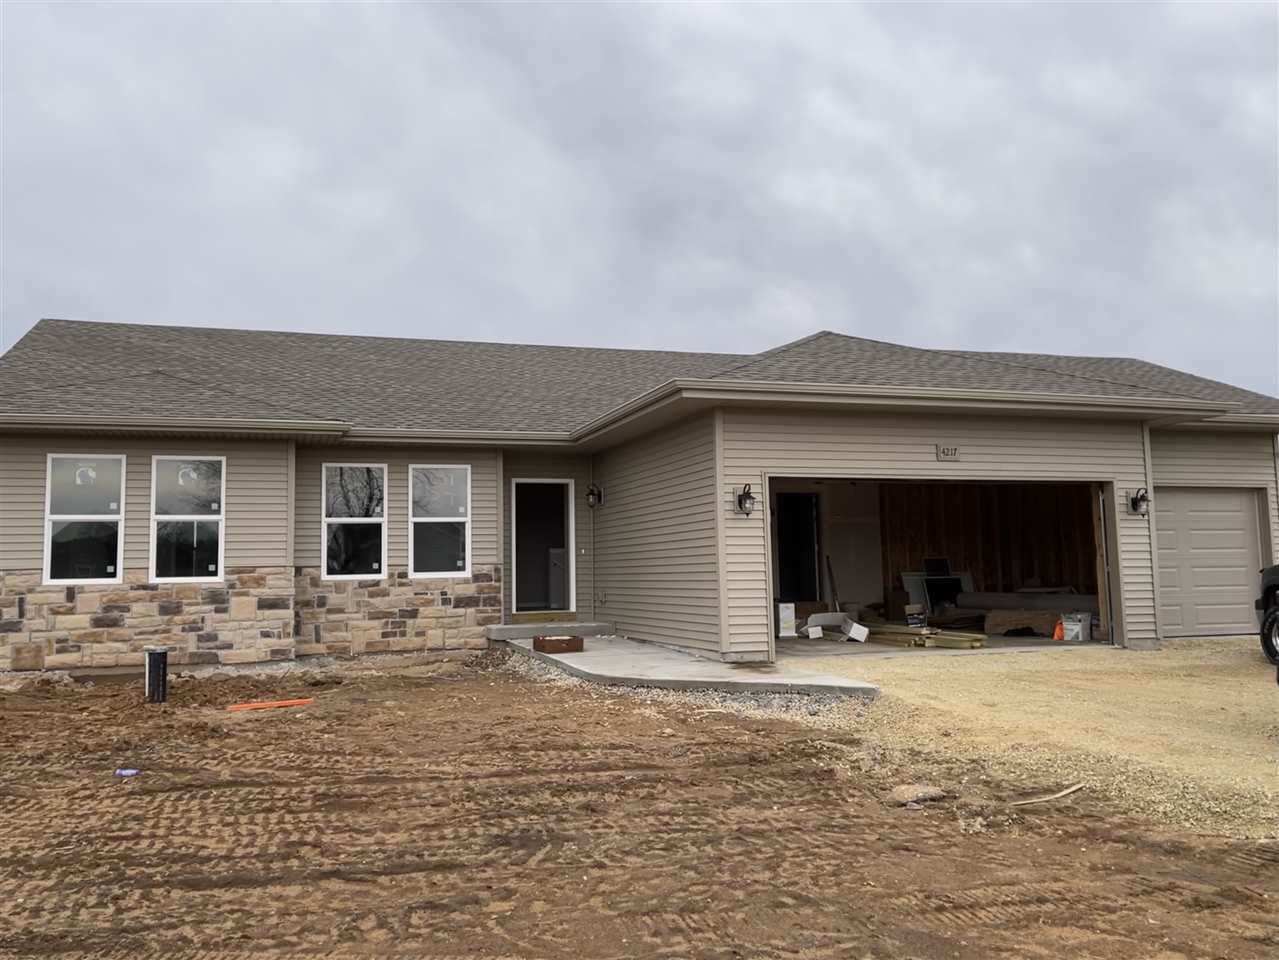 f_1906137 Our Listings at Best Realty of Edgerton